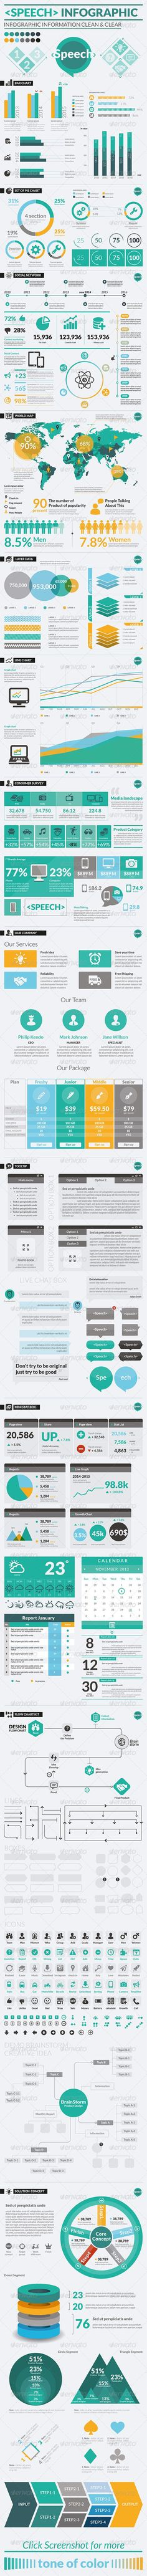 Speech Infographic Template #design Download: http://graphicriver.net/item/speech-infographic/6755476?ref=ksioks